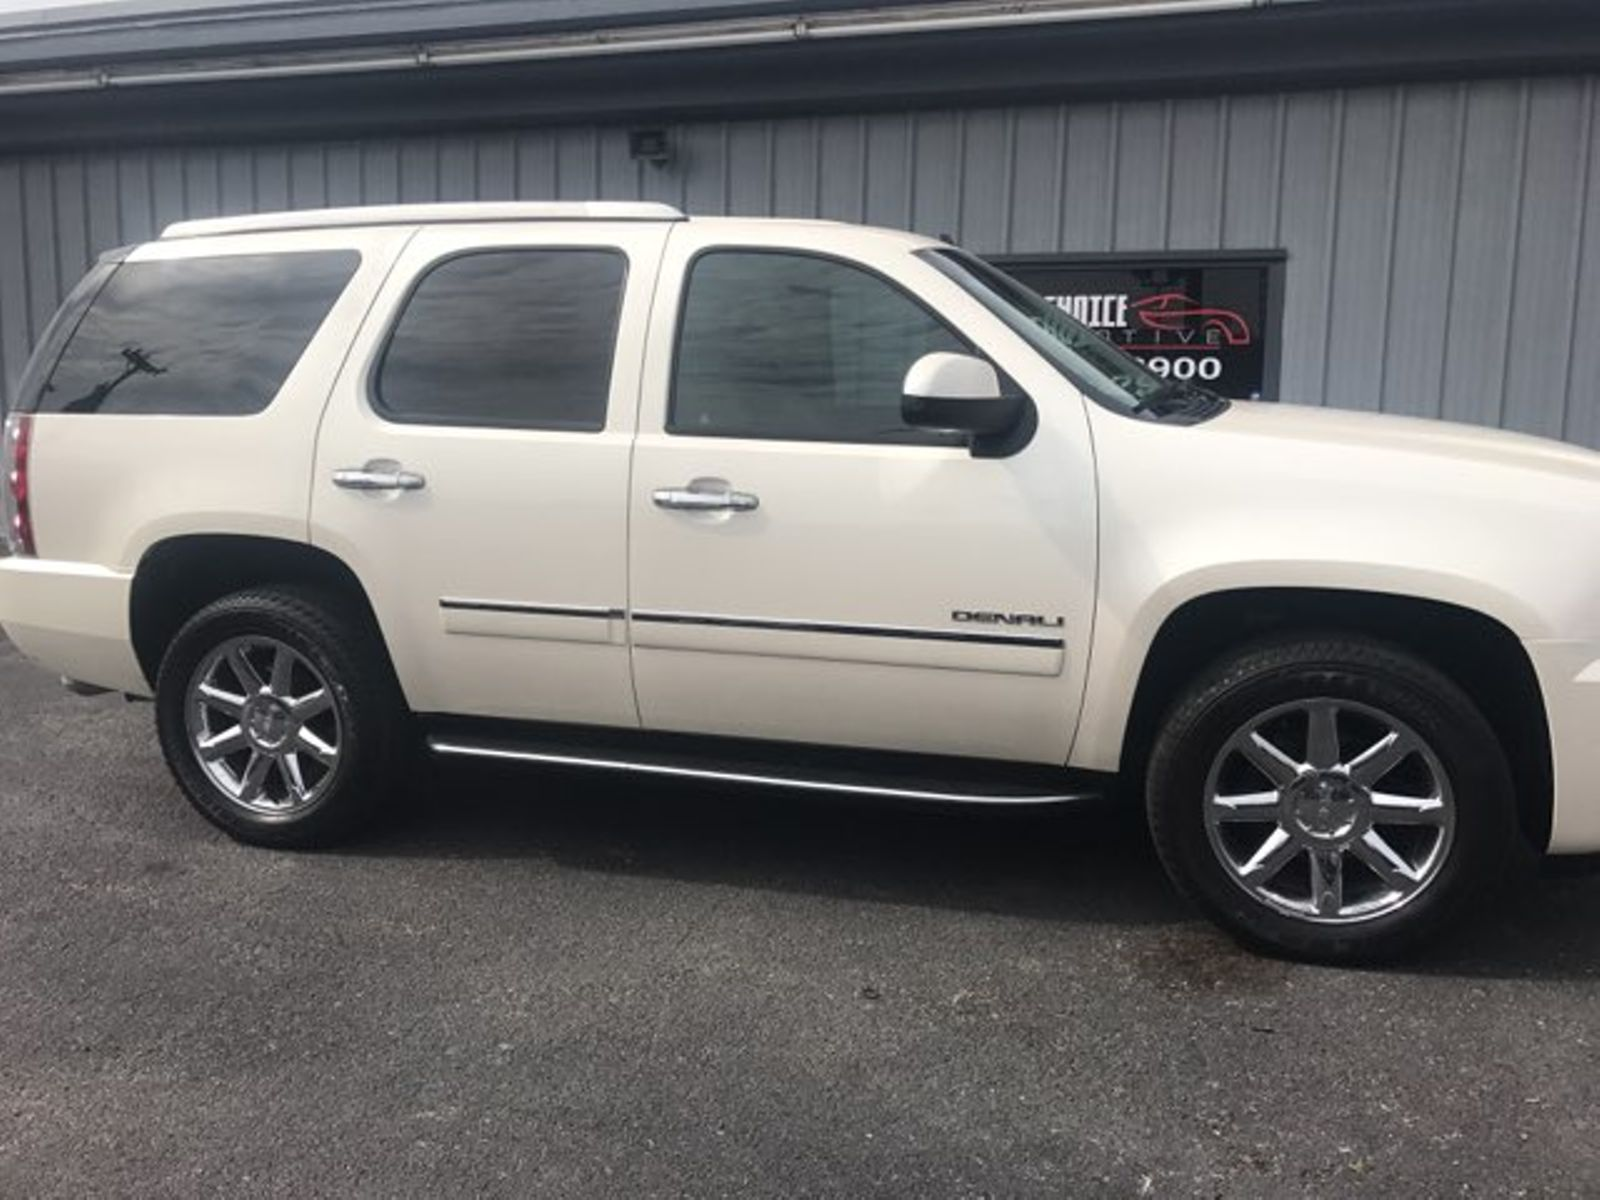 denali supercharged brembos gmc di upgrade vehicles yukon hennessey tahoe